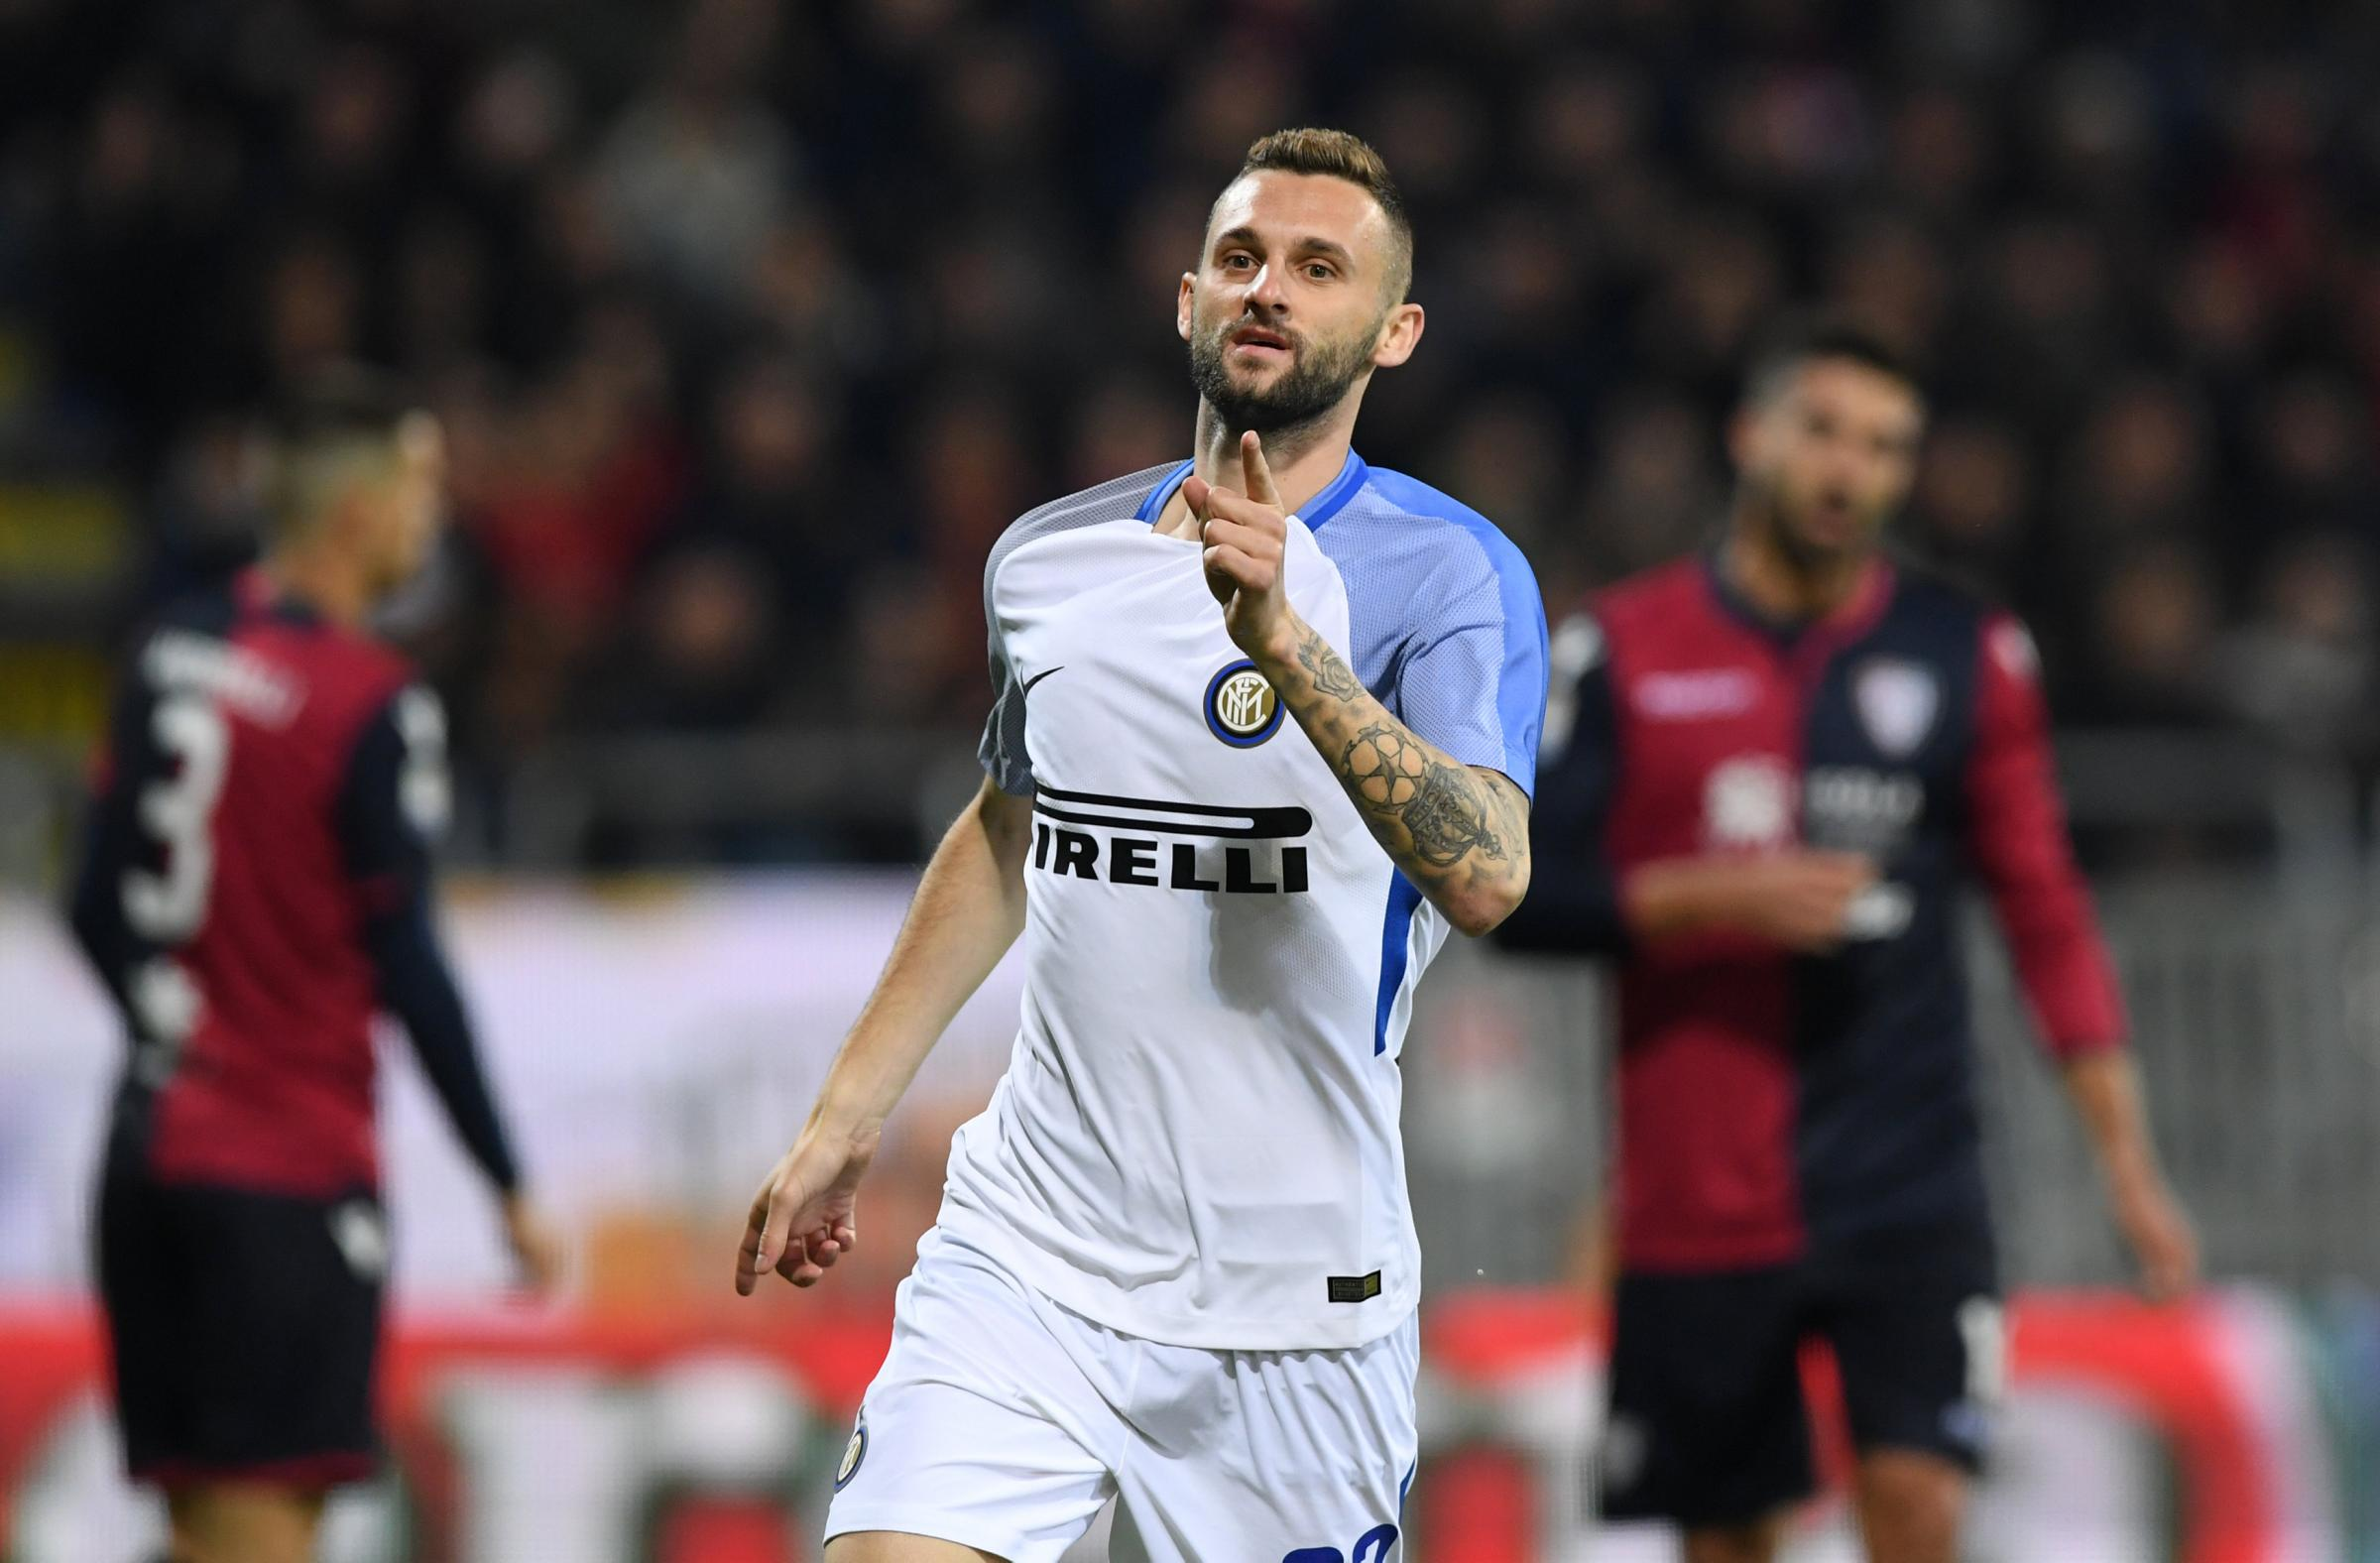 Marcelo Brozovic celebrates scoring one of his three goals this season. Picture: Action Images